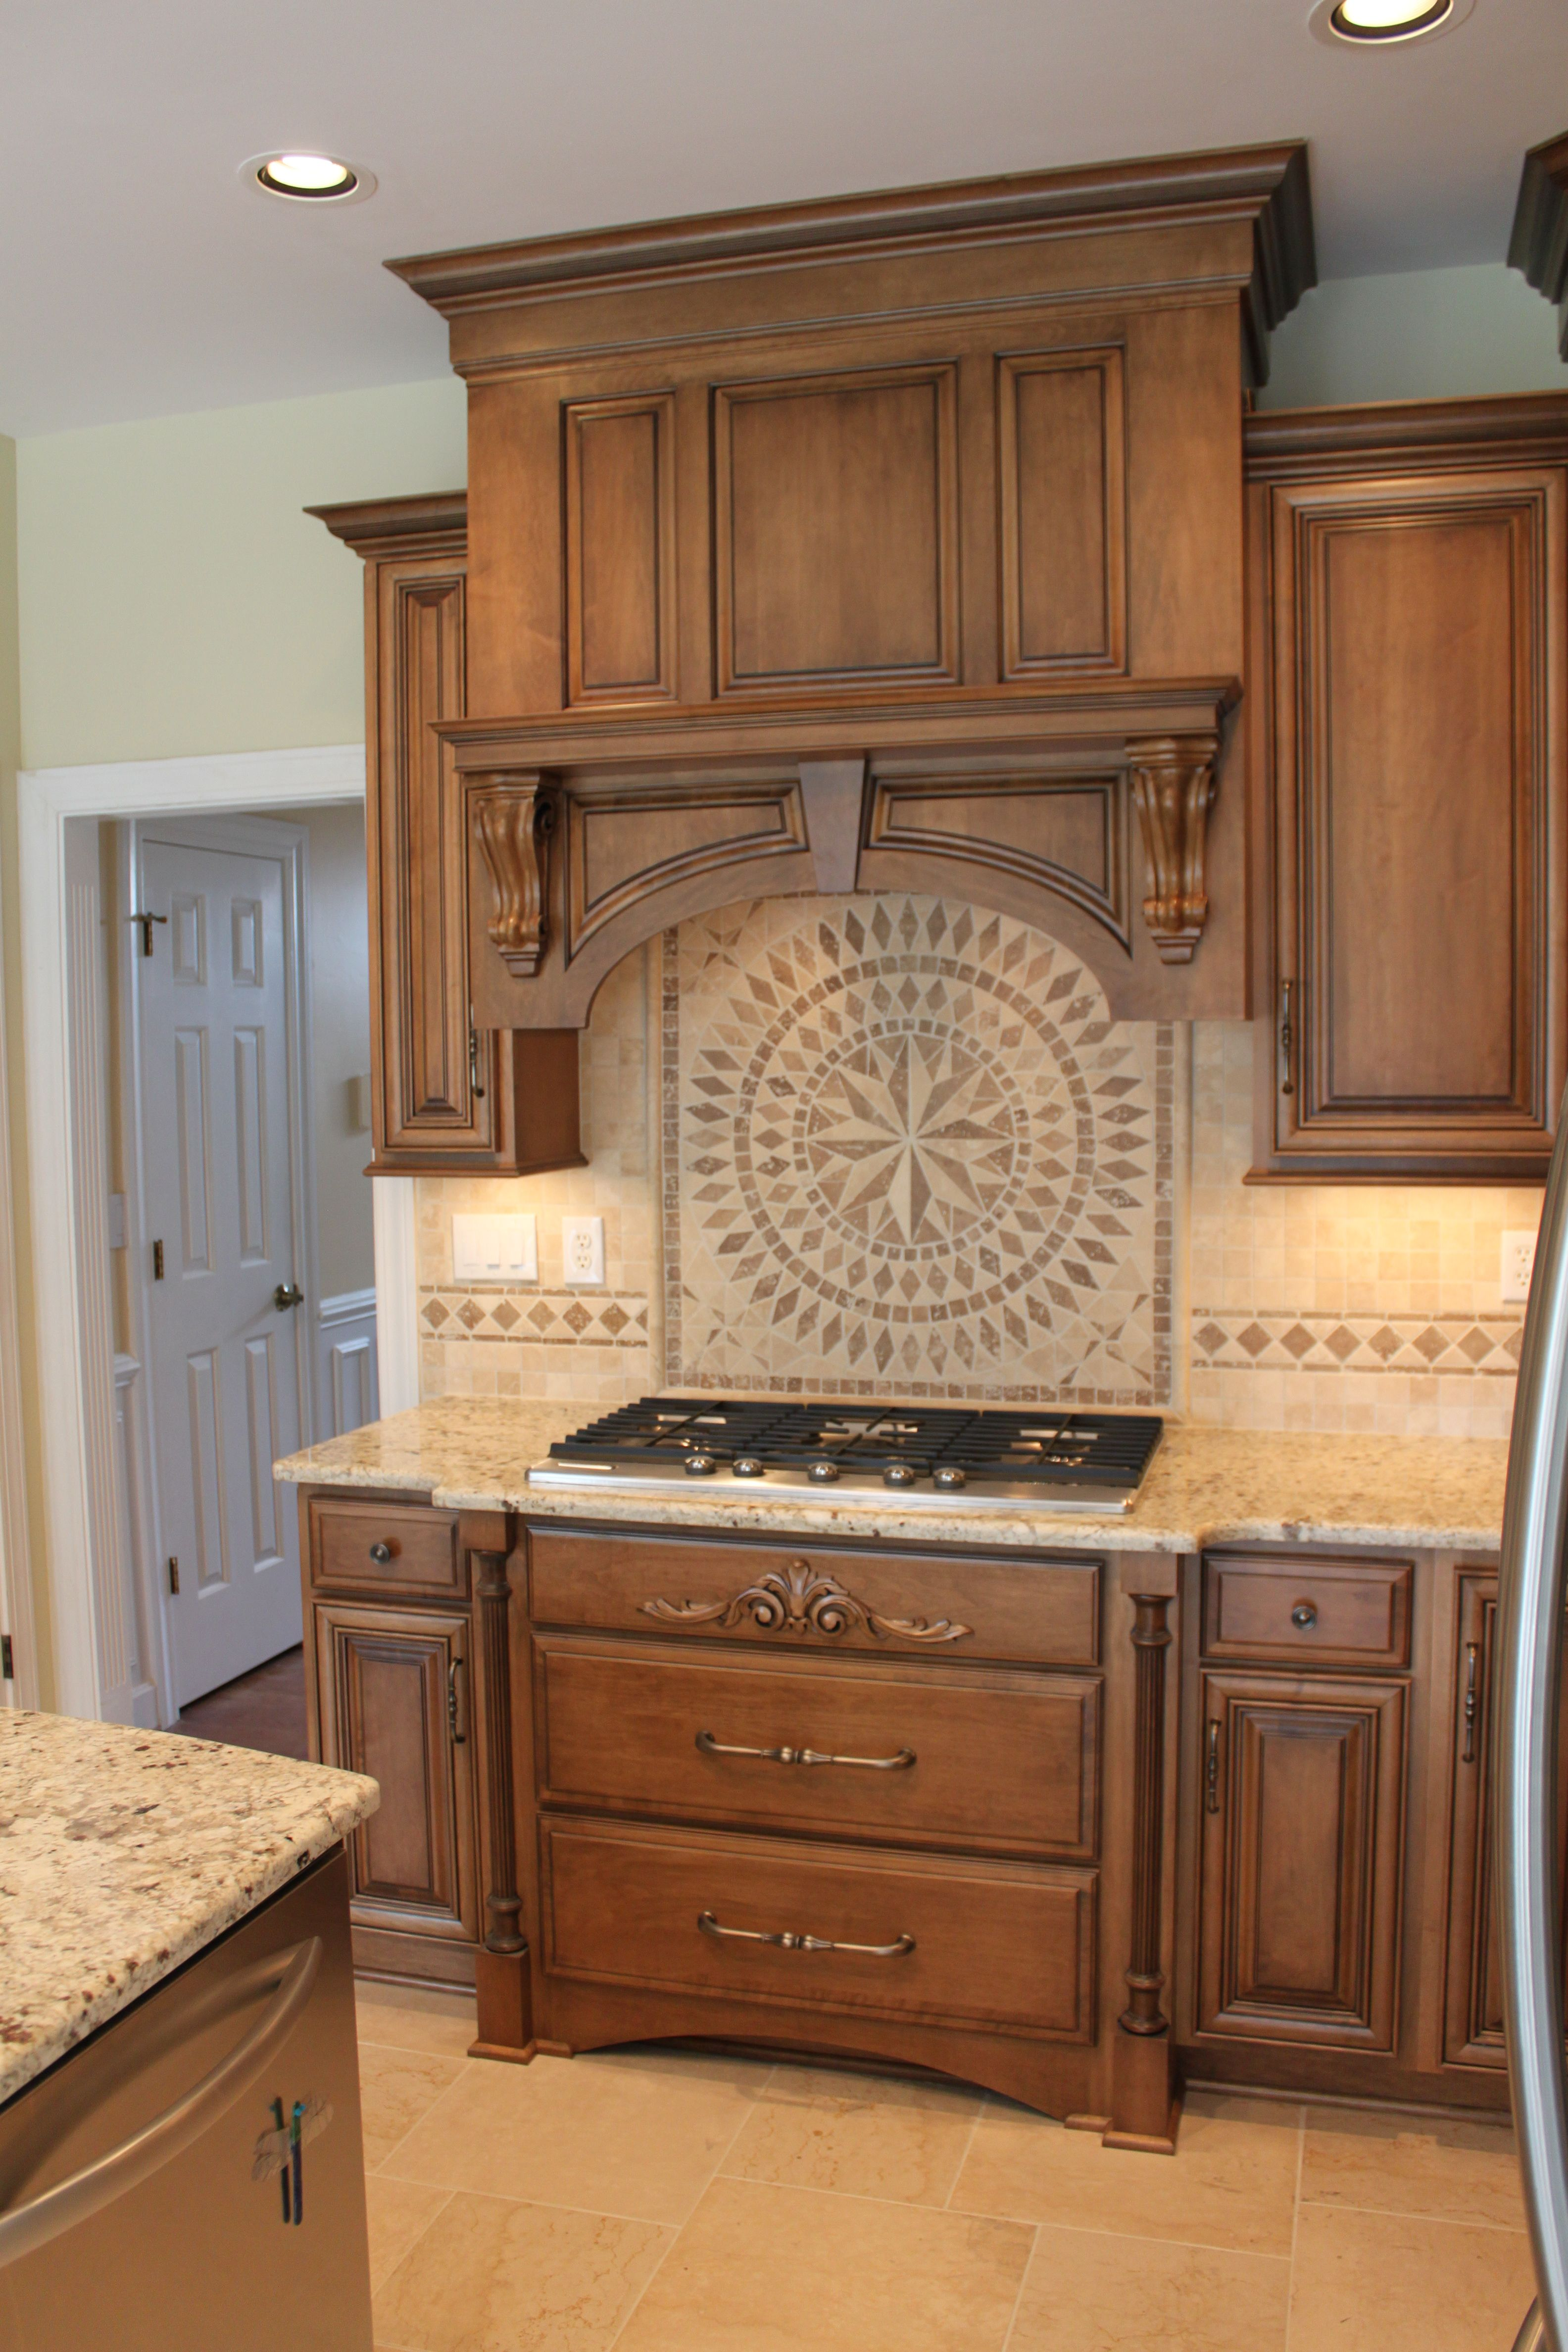 shiloh cabinetry maple acorn with vandyke glaze on perimeter